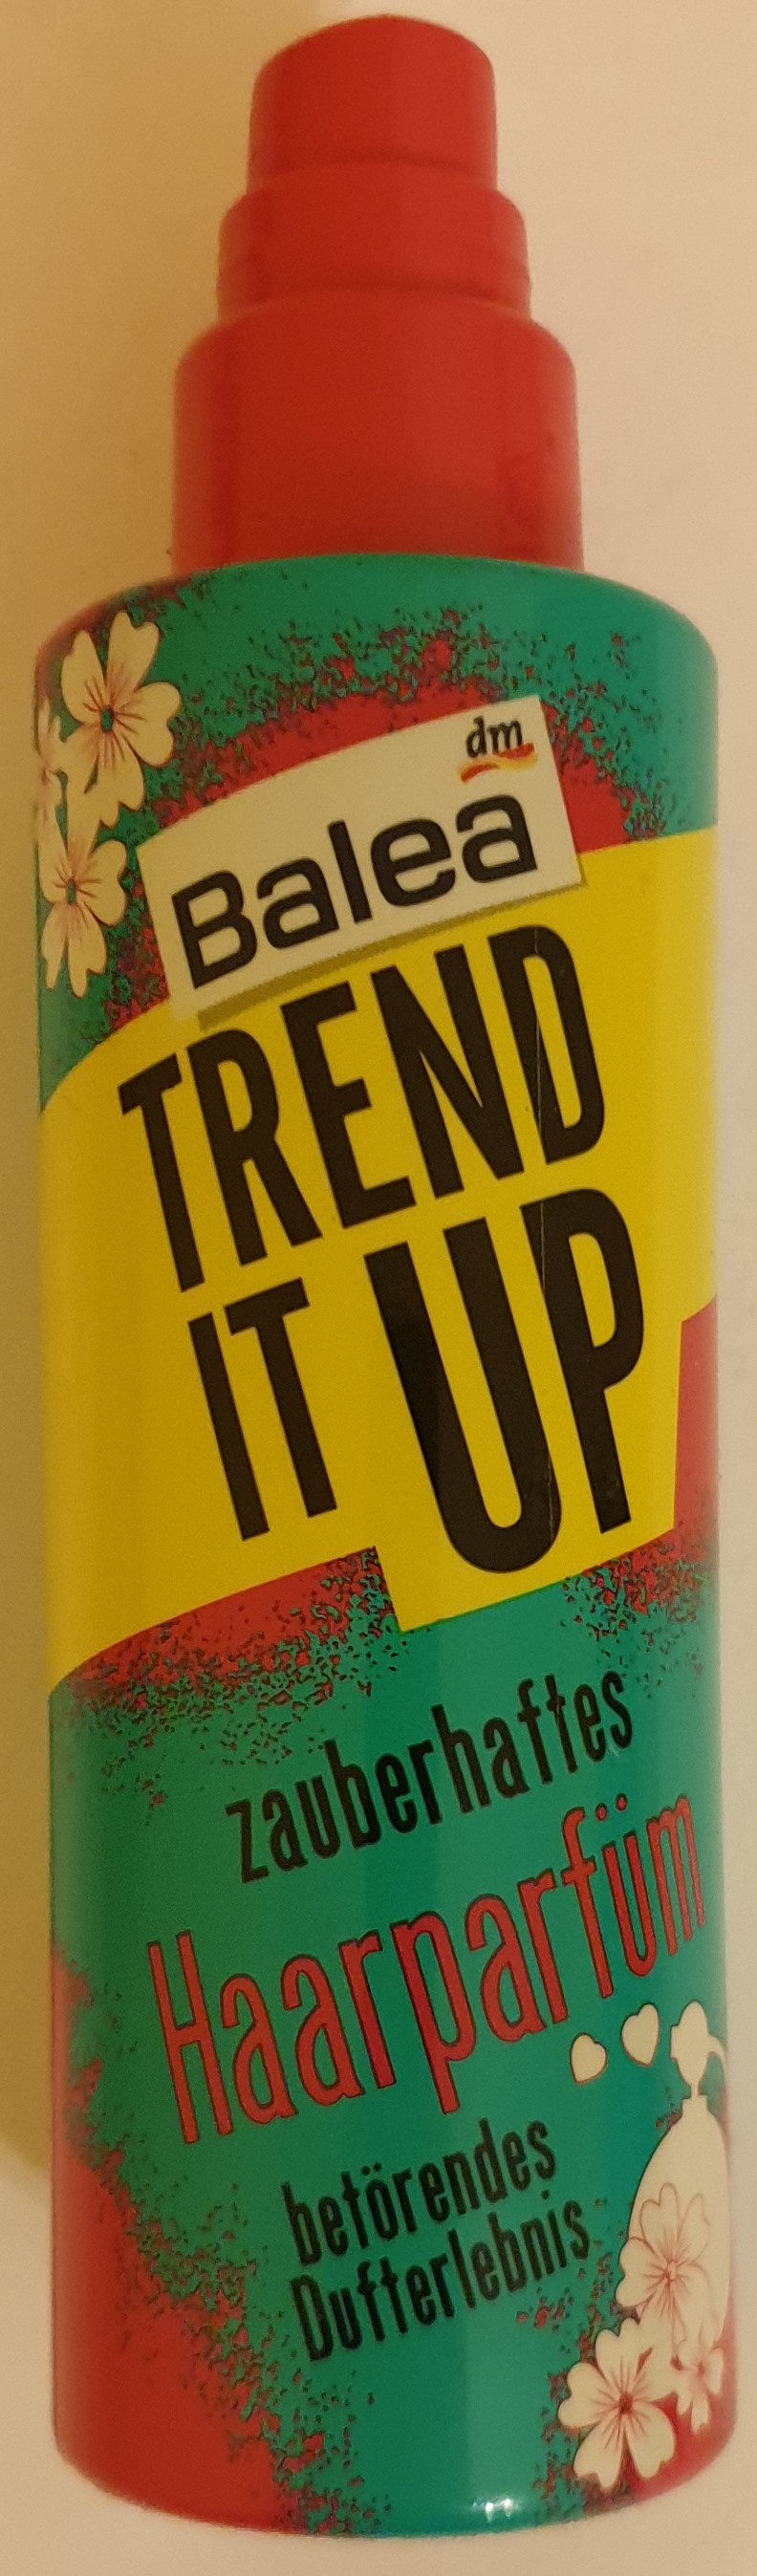 Trend it up - Product - de